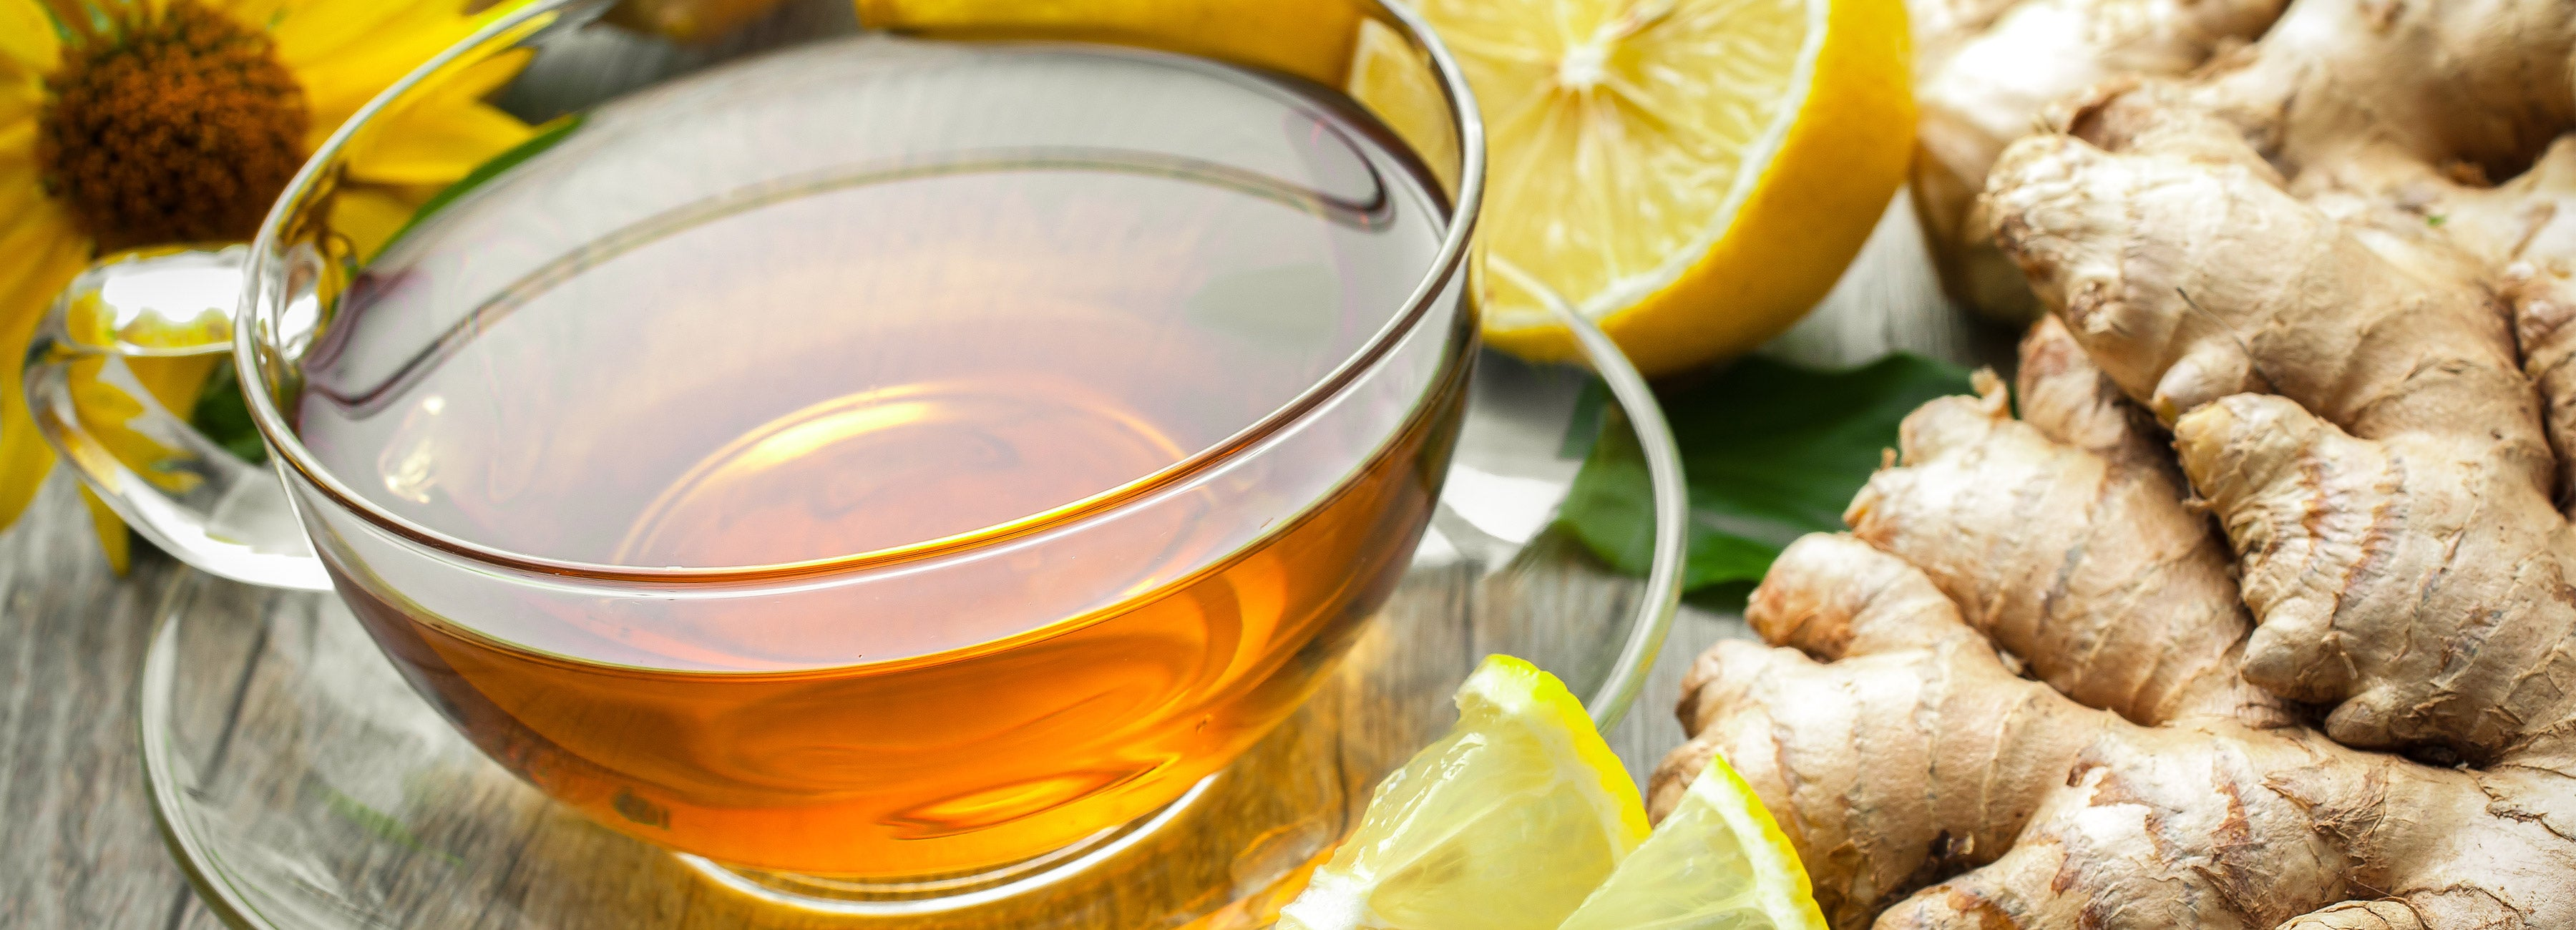 Lets Talk About Vitamin C and Tea